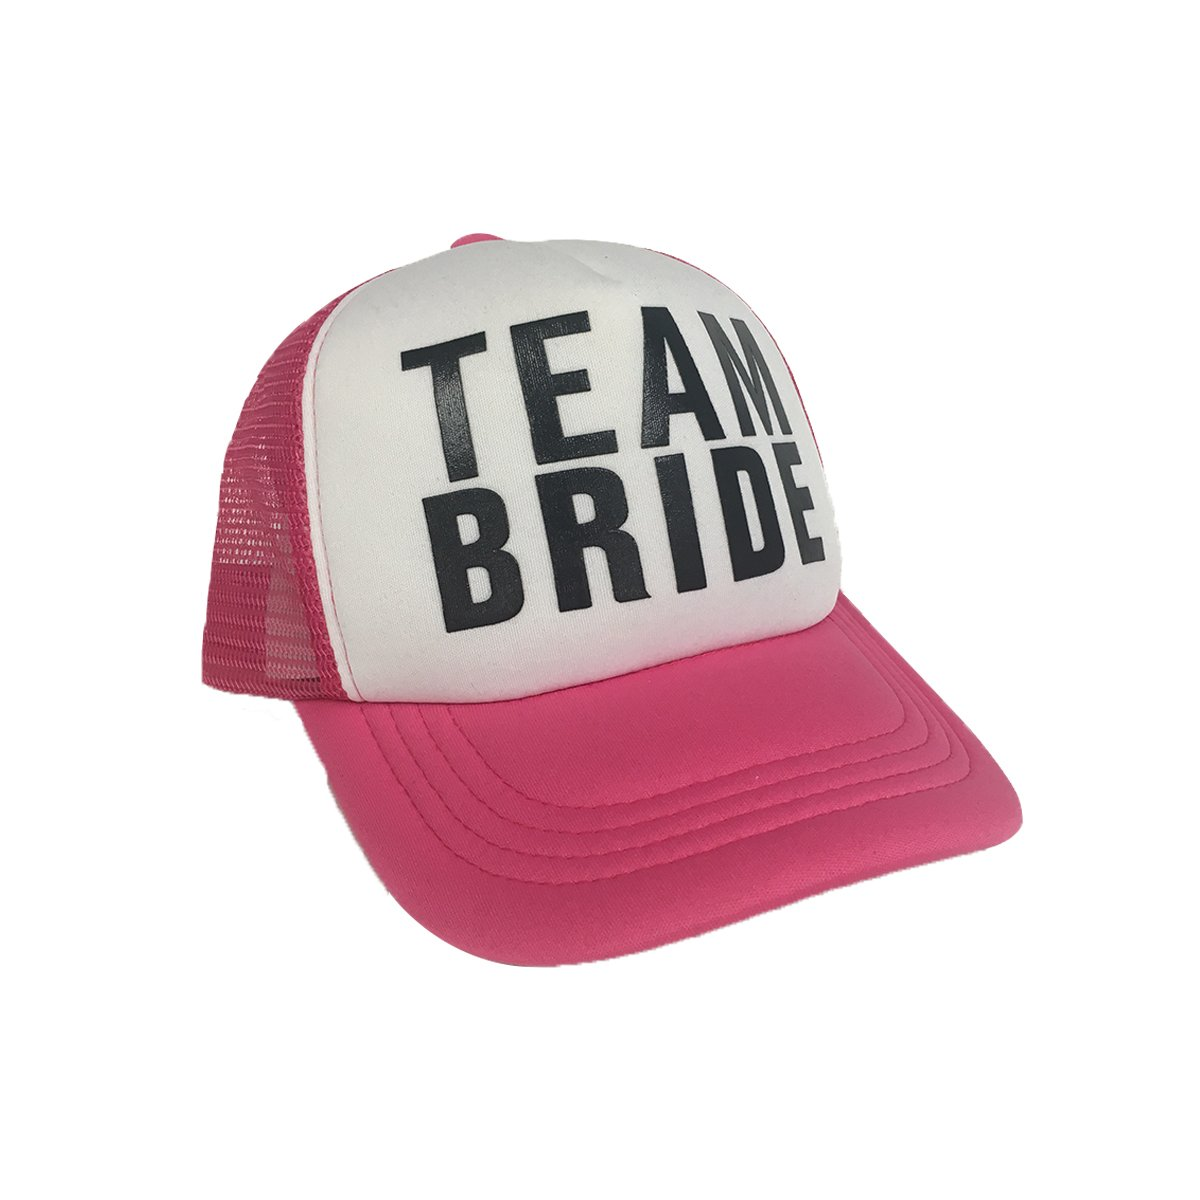 MyPartyShirt Team Bride Pink Trucker Hat Bachelorette Party Cap Wedding Neon Bridal Hen Do